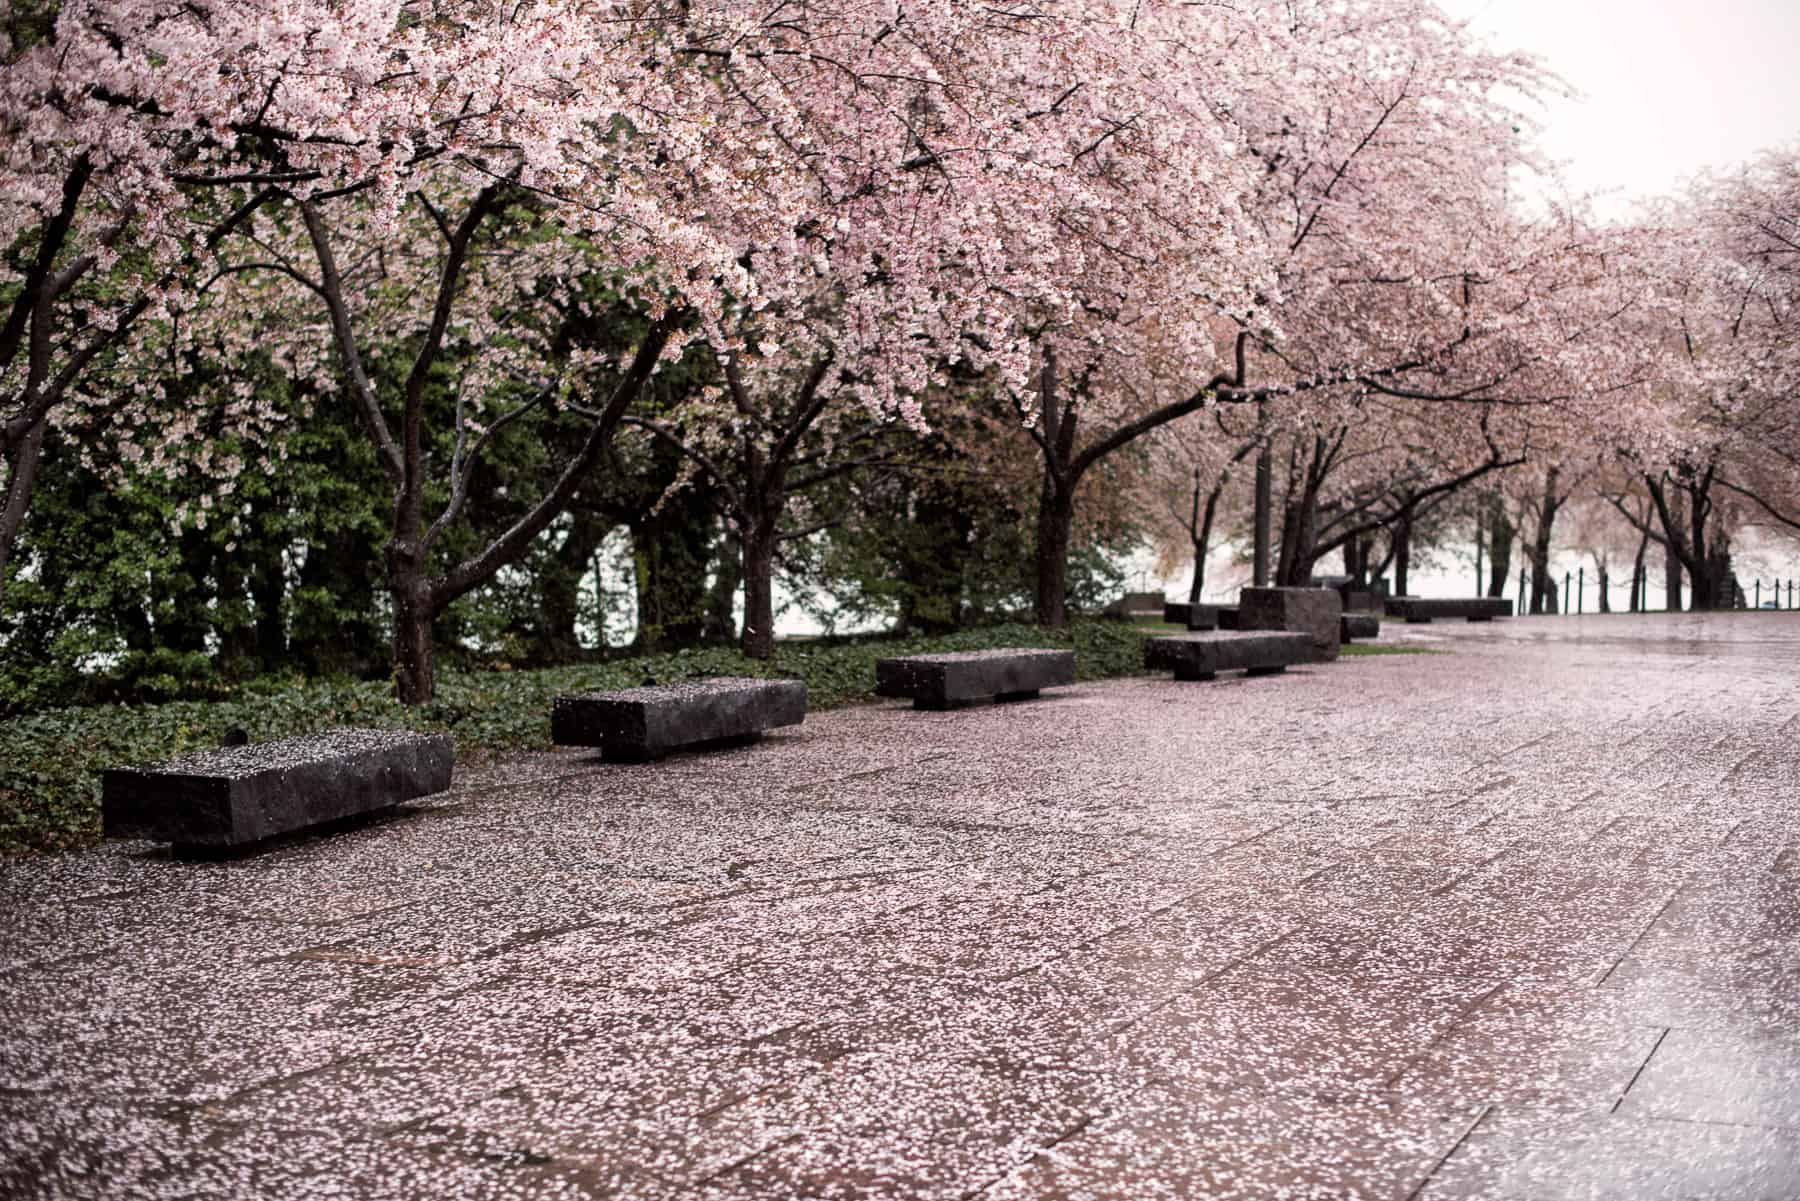 Washington Dc Cherry Blossom Watch Update March 31 2017